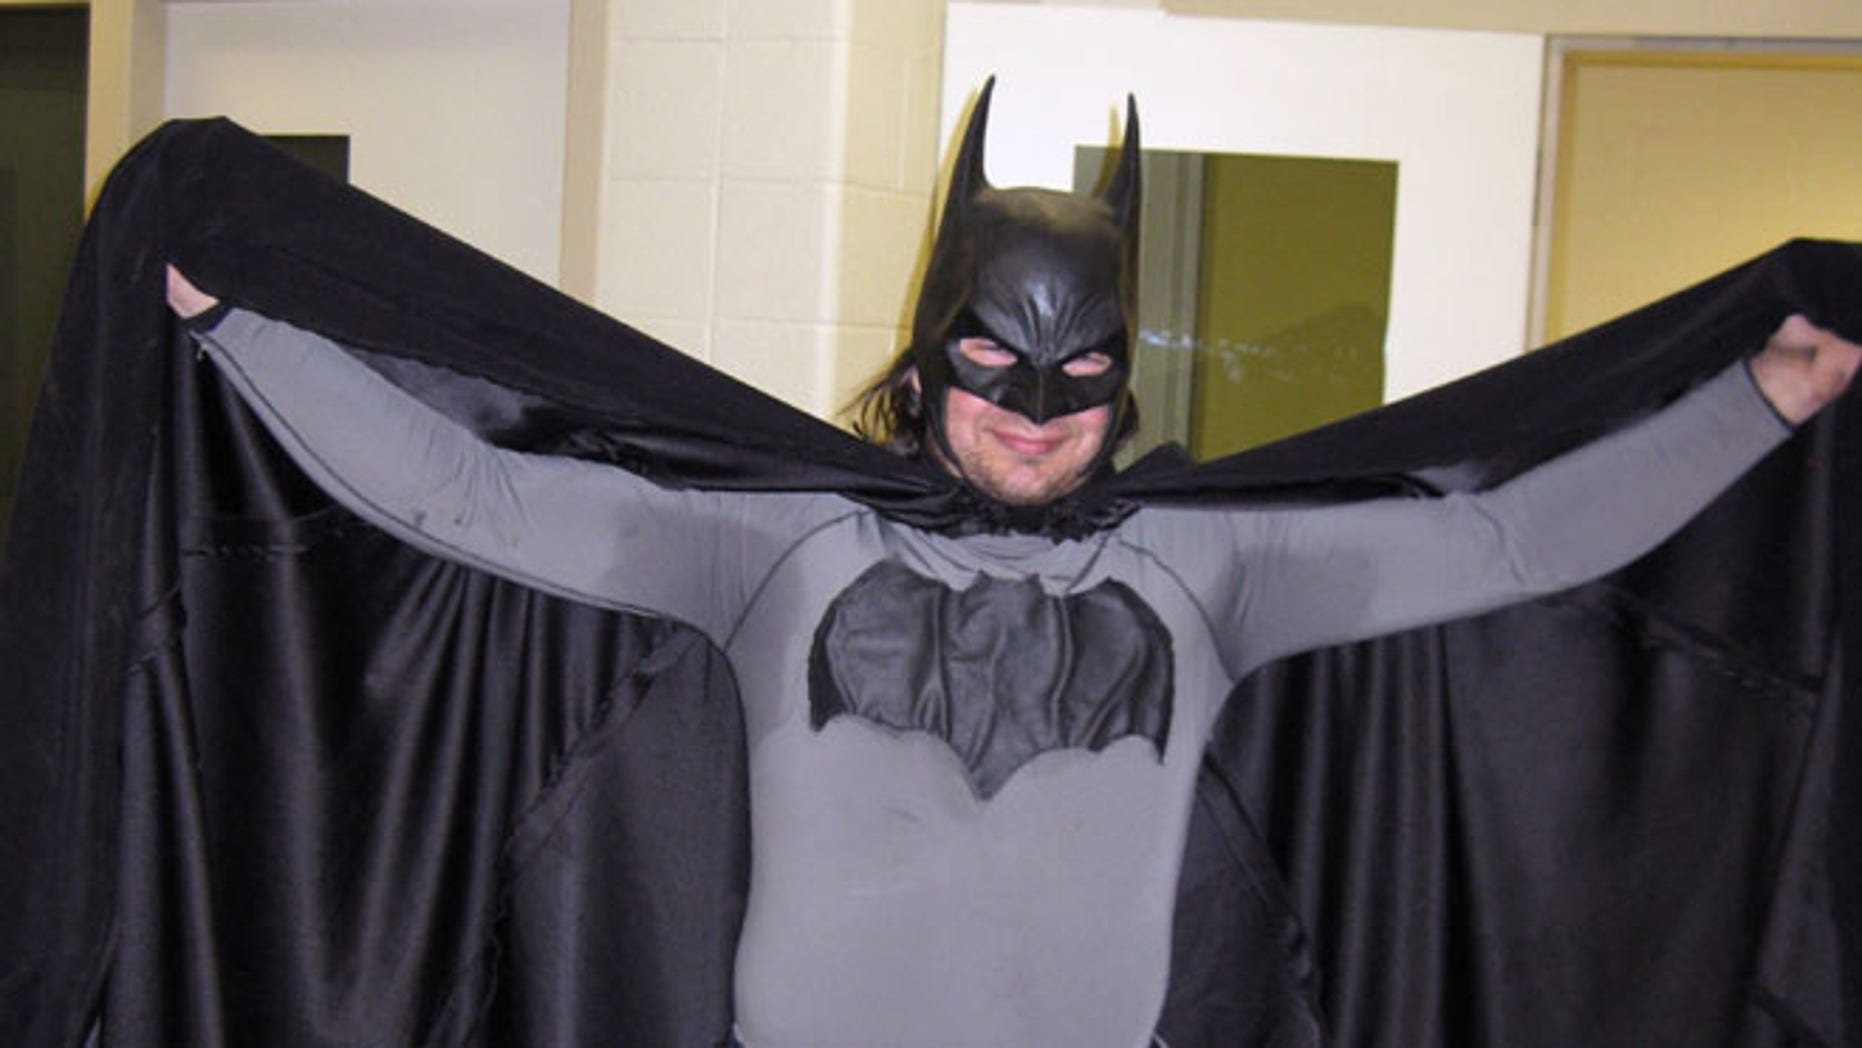 May 11, 2011: In this file photo provided by the Petoskey, Mich., Department of Public Safety shows Mark Williams dressed as Batman, at the Emmet County jail in Petoskey, Mich.  Michigan State Police arrested Williams, 33, in his Batman outfit, for resisting and obstructing police in an investigation Saturday, Sept. 29, 2012 at a personal injury accident. Willams wanted to help look for the driver, but his scent kept confusing a police dog in its search.